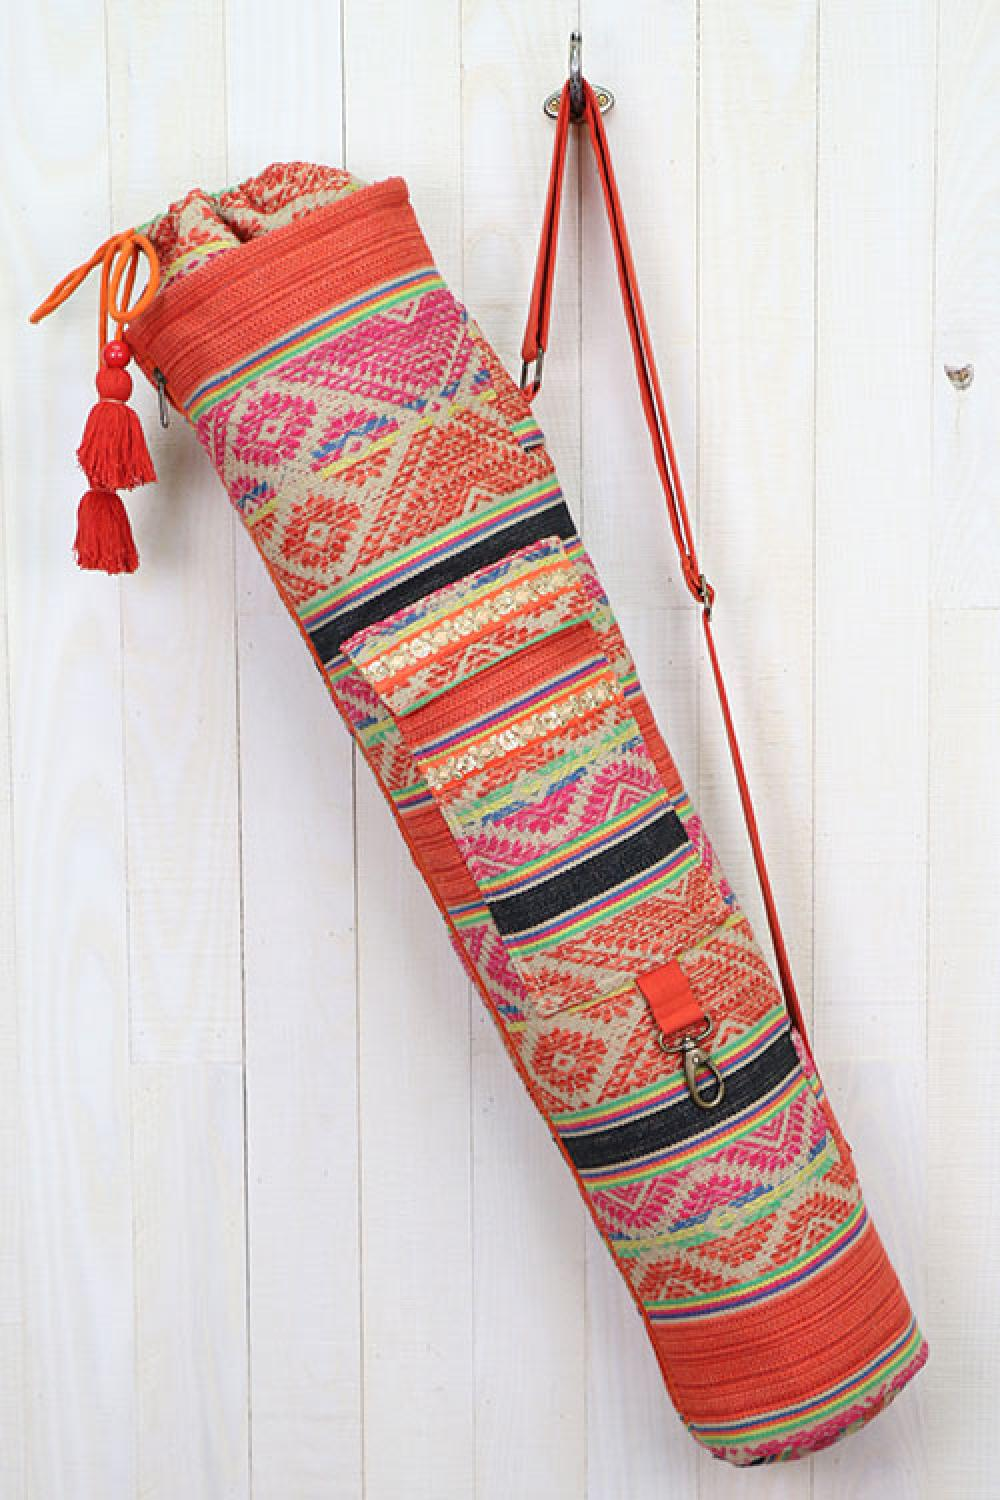 Asana Ikat Inspired Yoga Bag